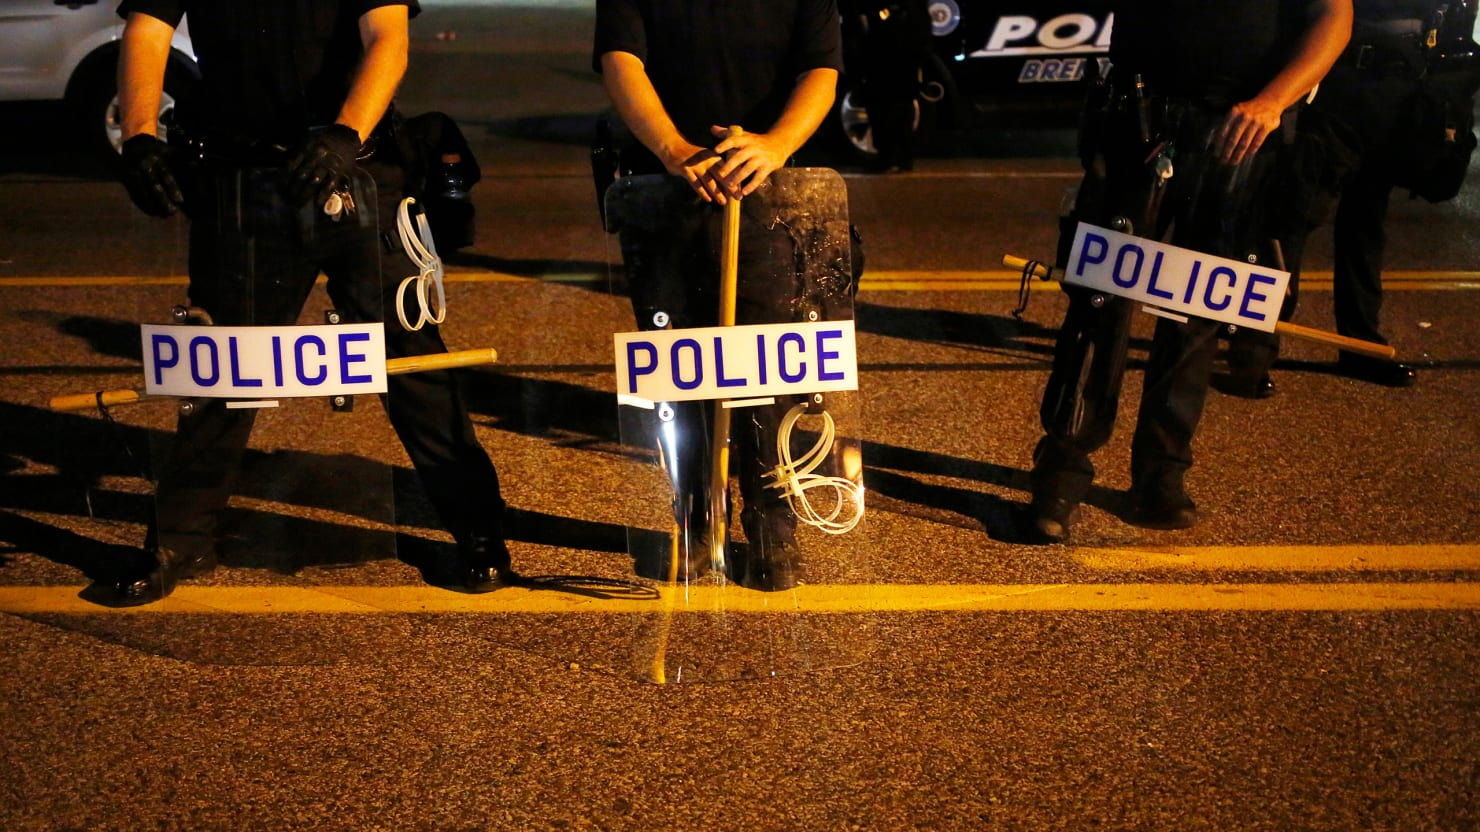 Racist Cops, Abused Women and the Blue Wall of Silence